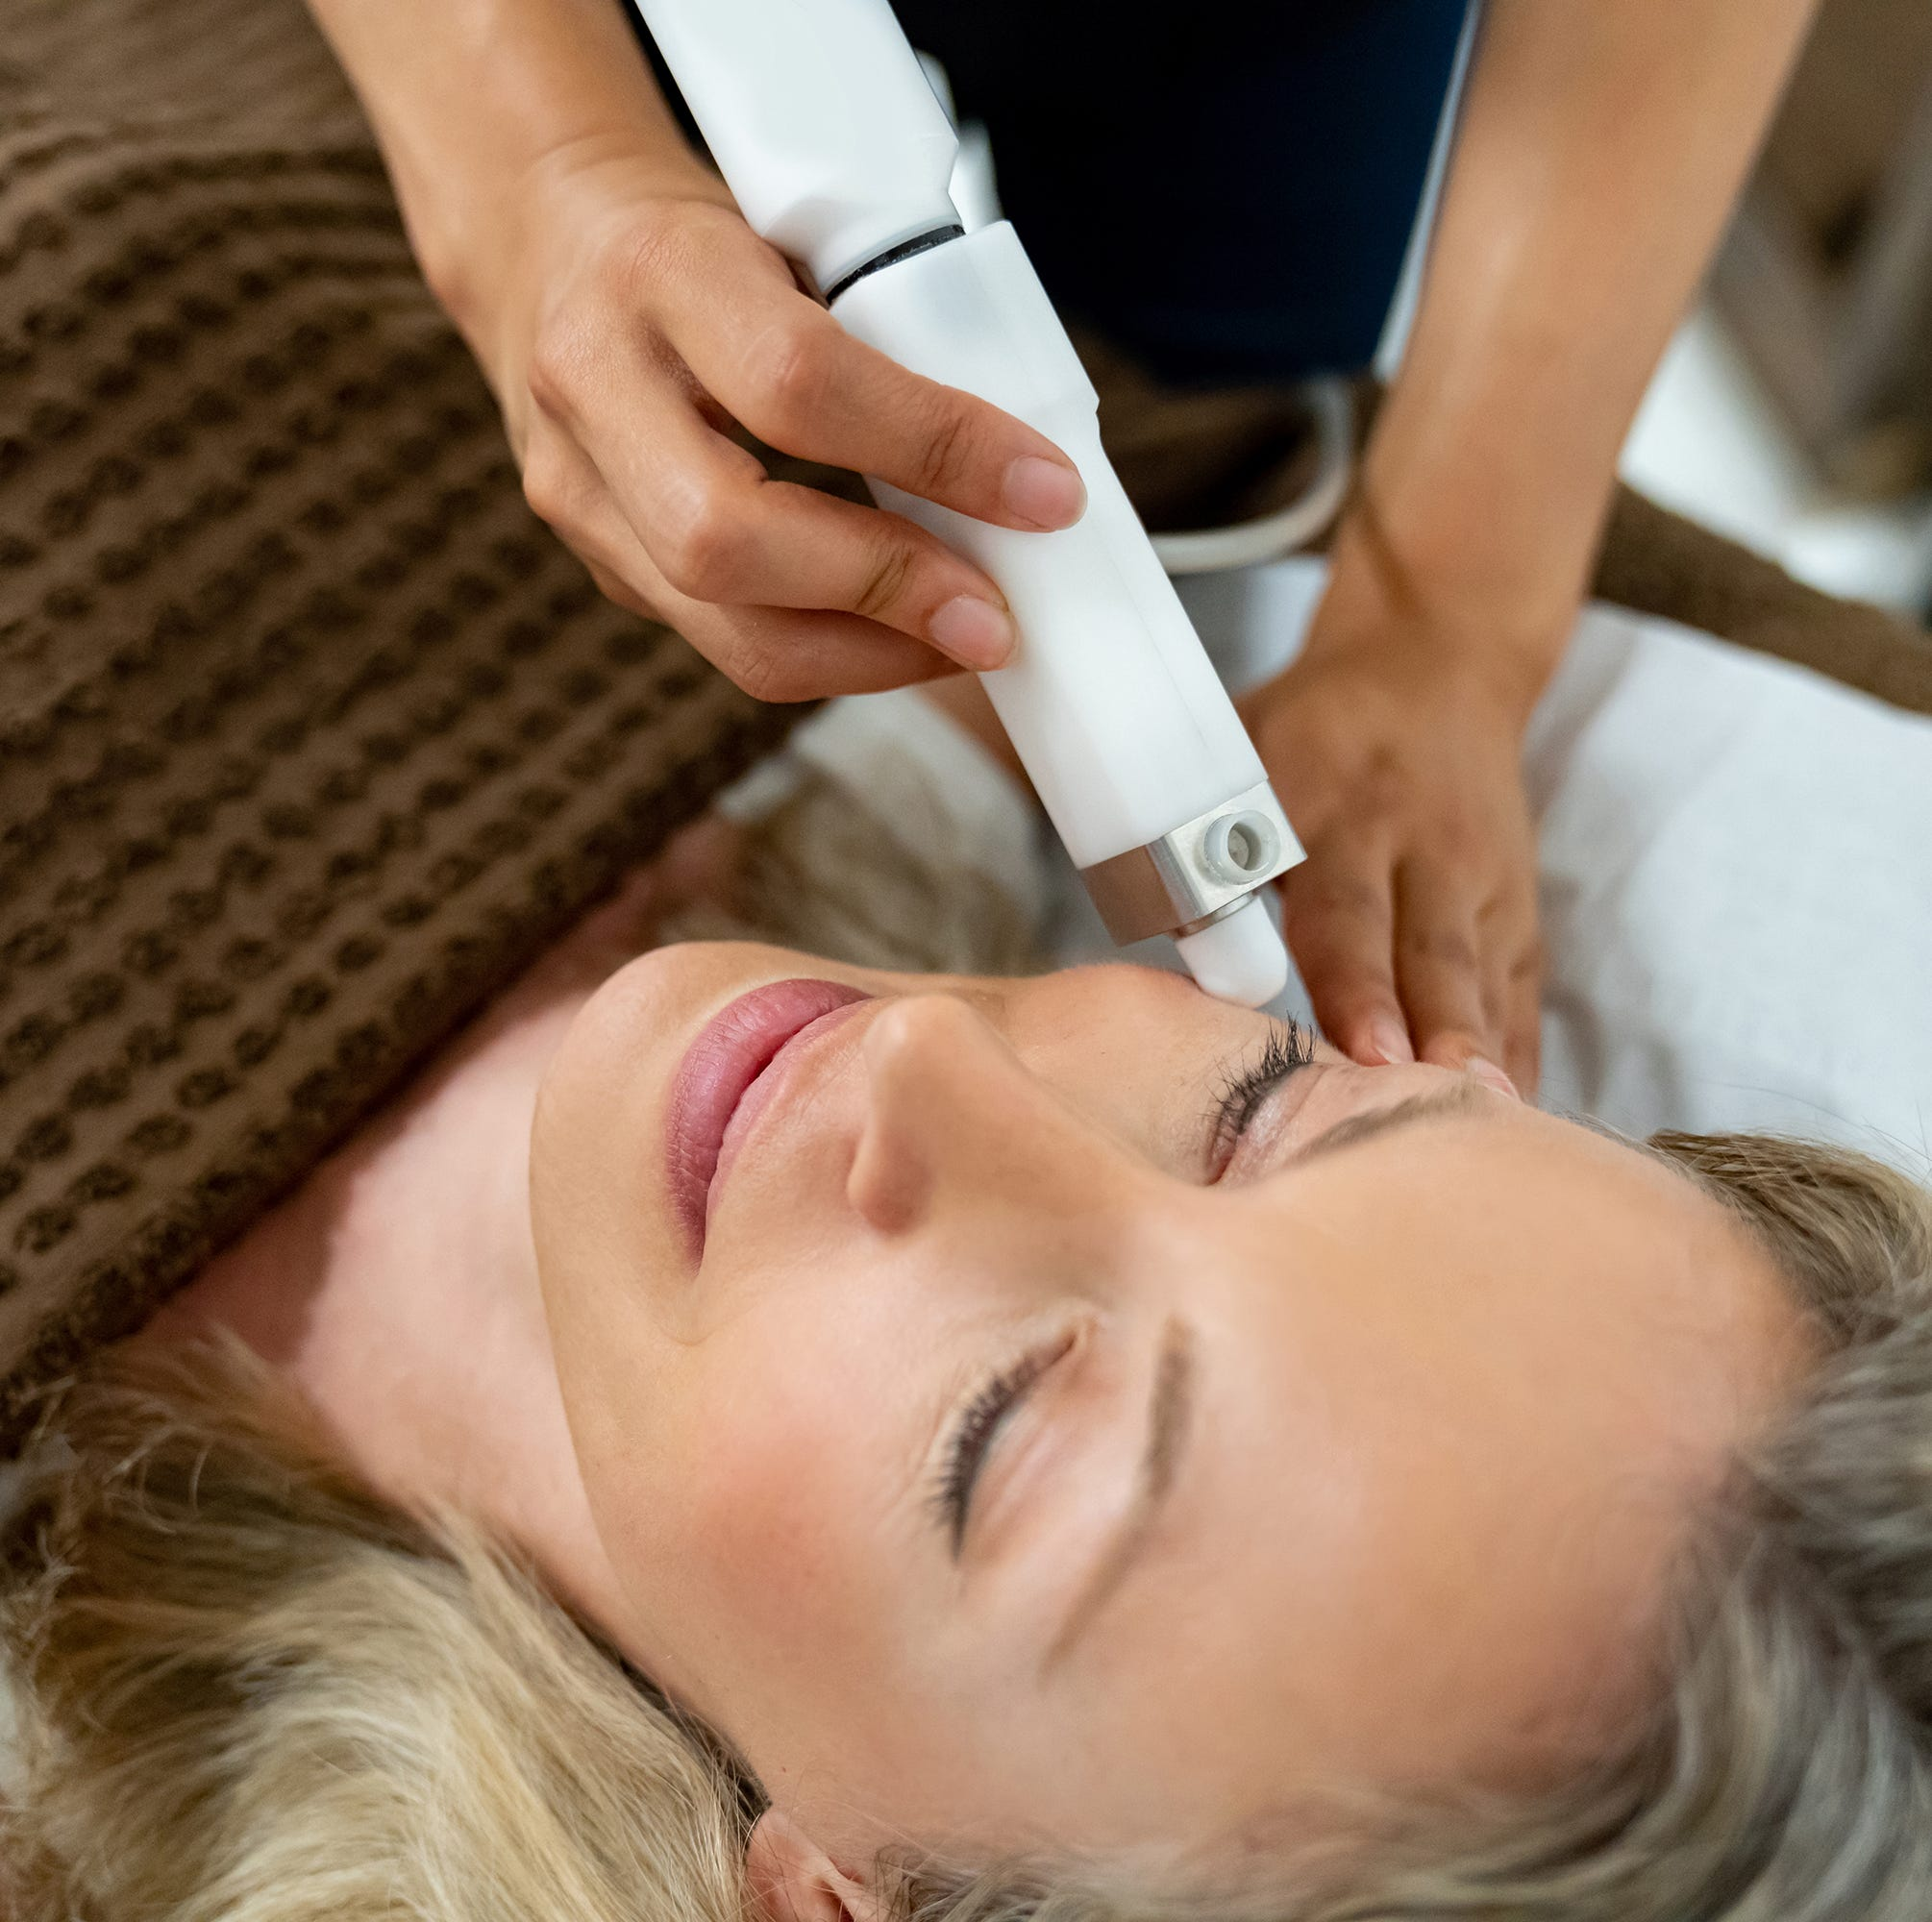 Hammerling: Laser treatments can help restore youthful look